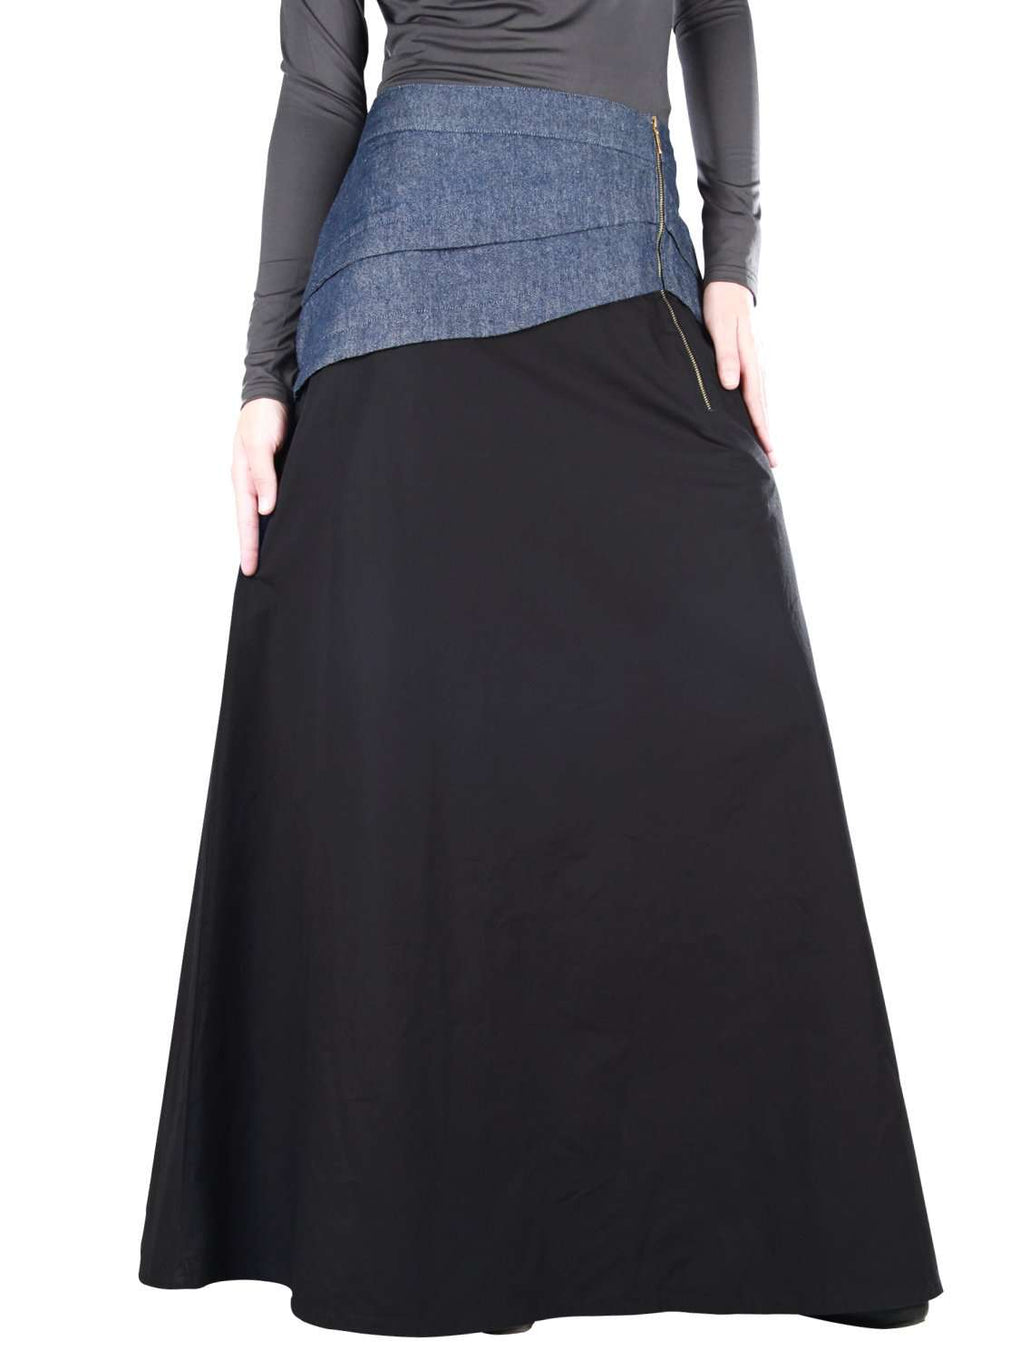 Aziz Black Cotton Denim Skirt